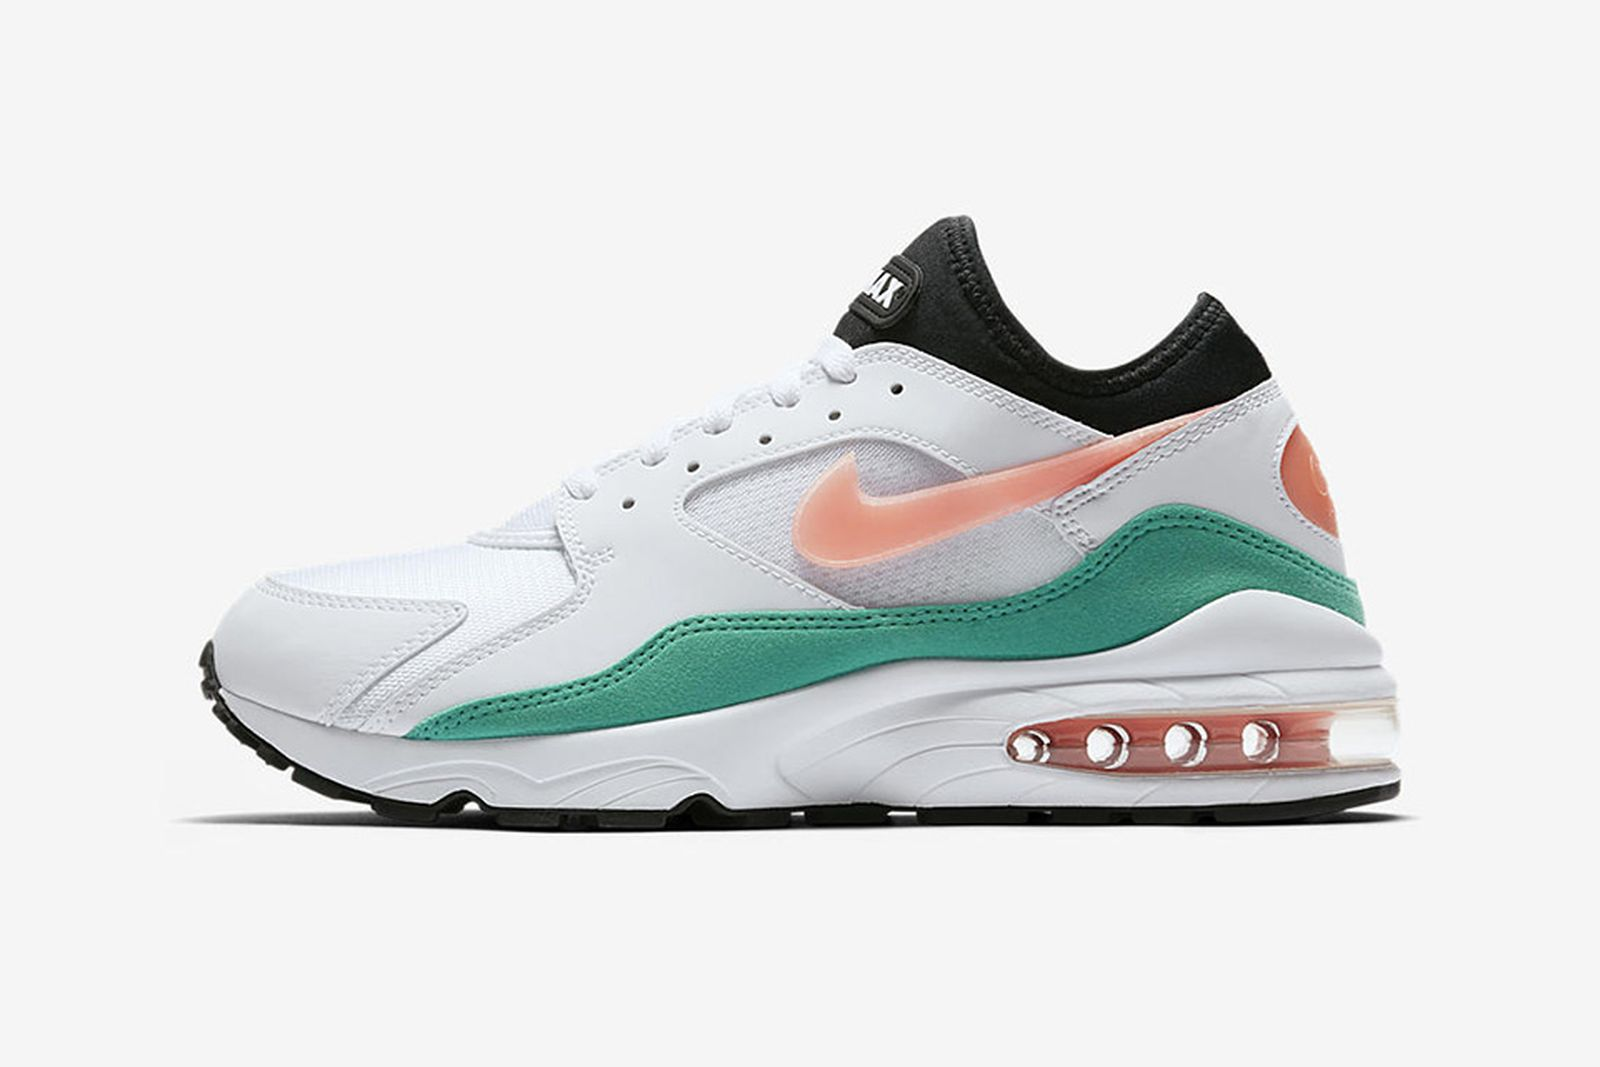 nike-air-max-miami-vibes-release-price-03